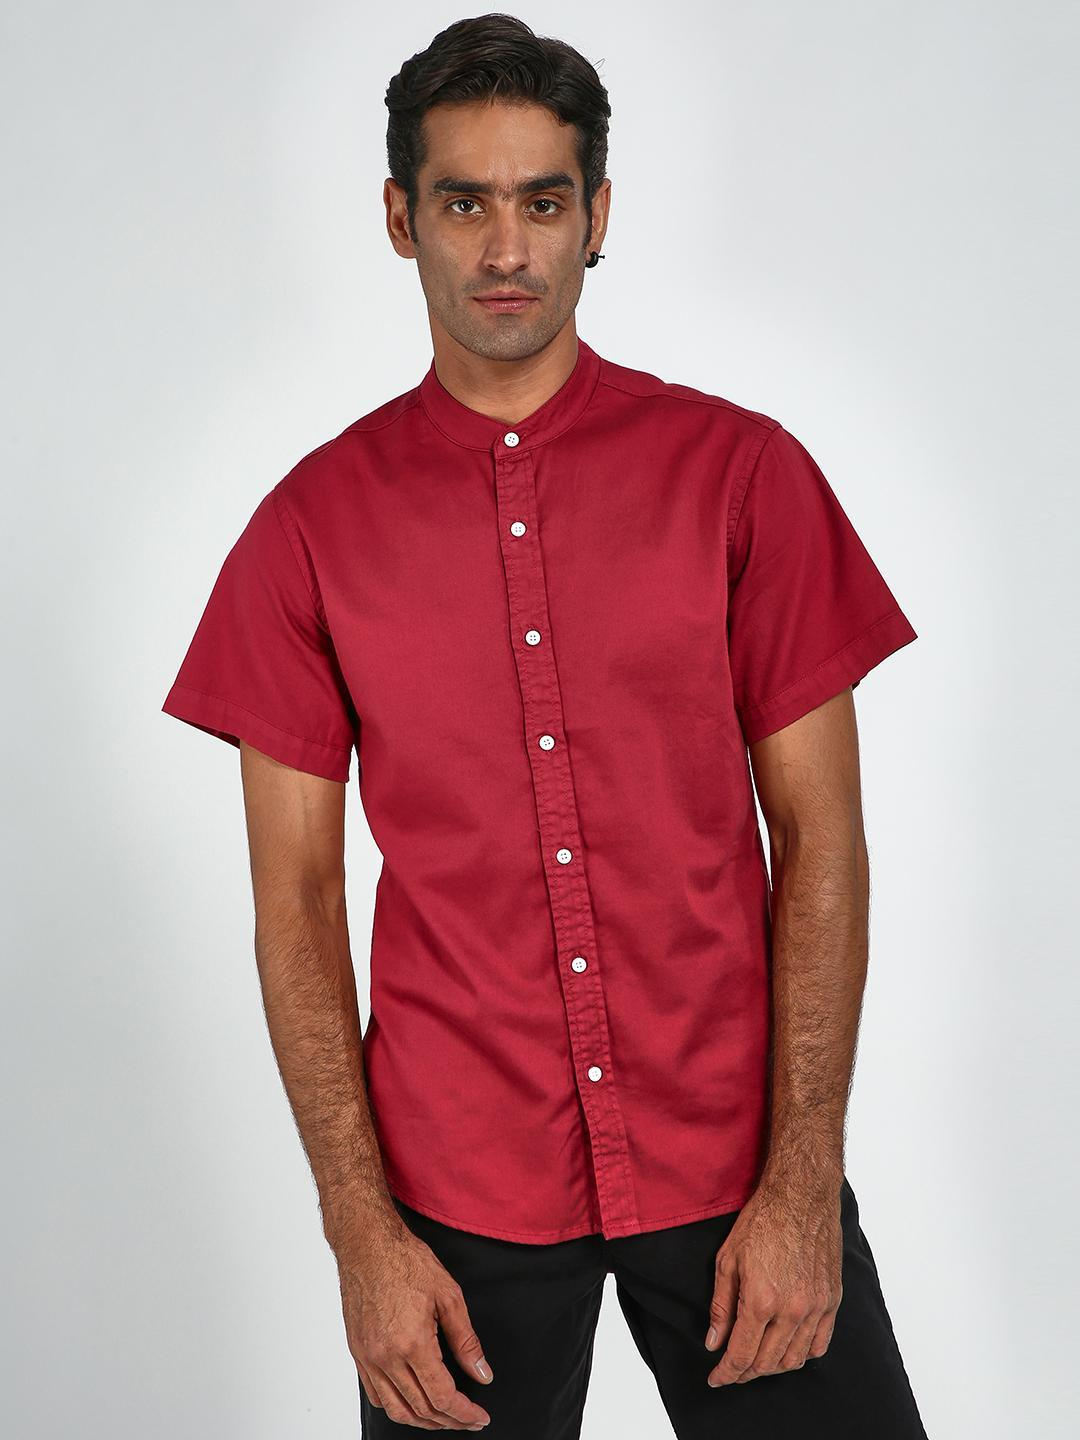 Blue Saint Red Mandarin Collar Short Sleeve Shirt 1